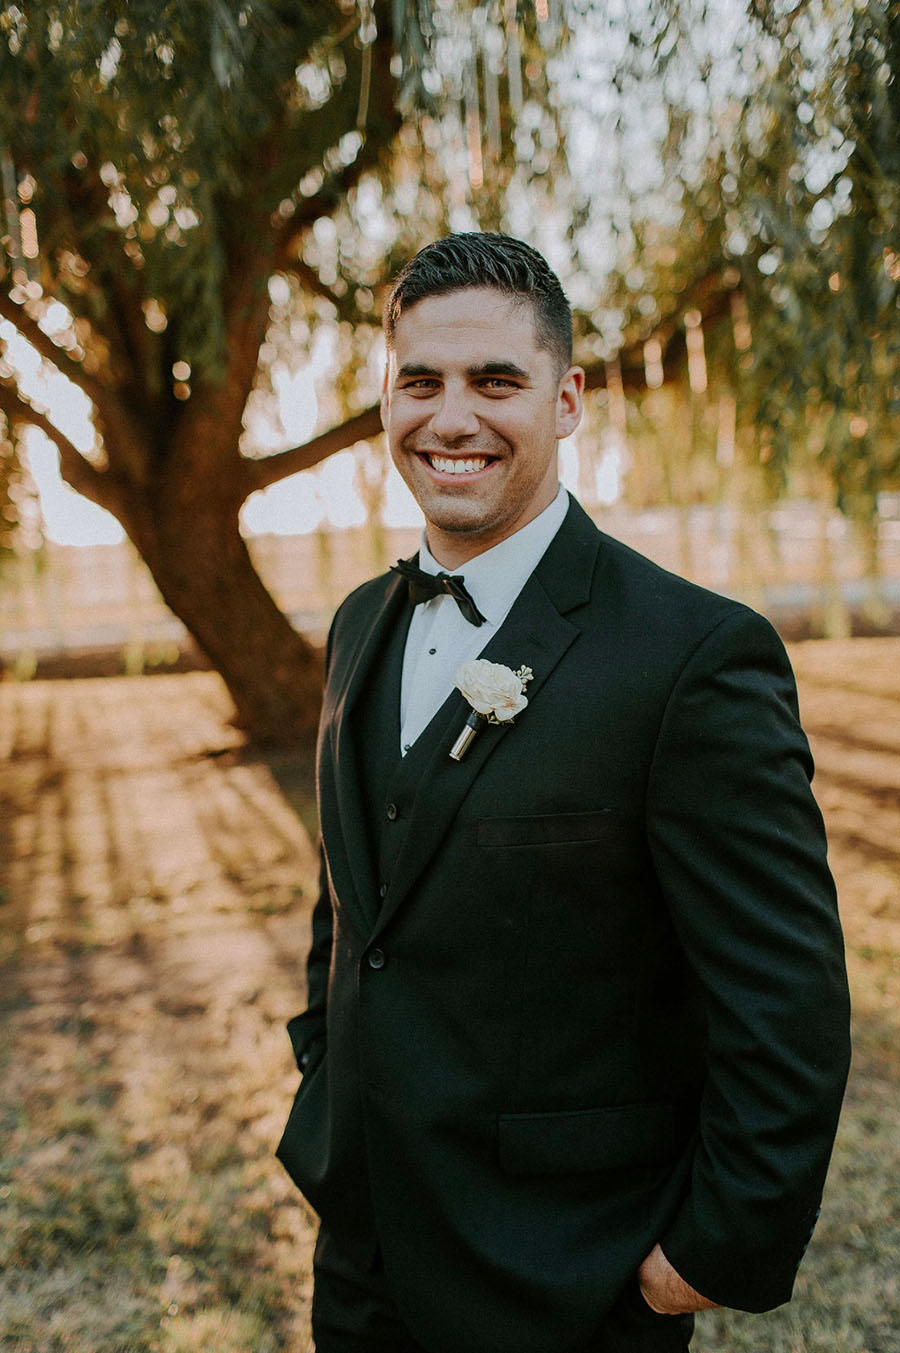 Stylish Black Tie Groom in a Three Piece Suit